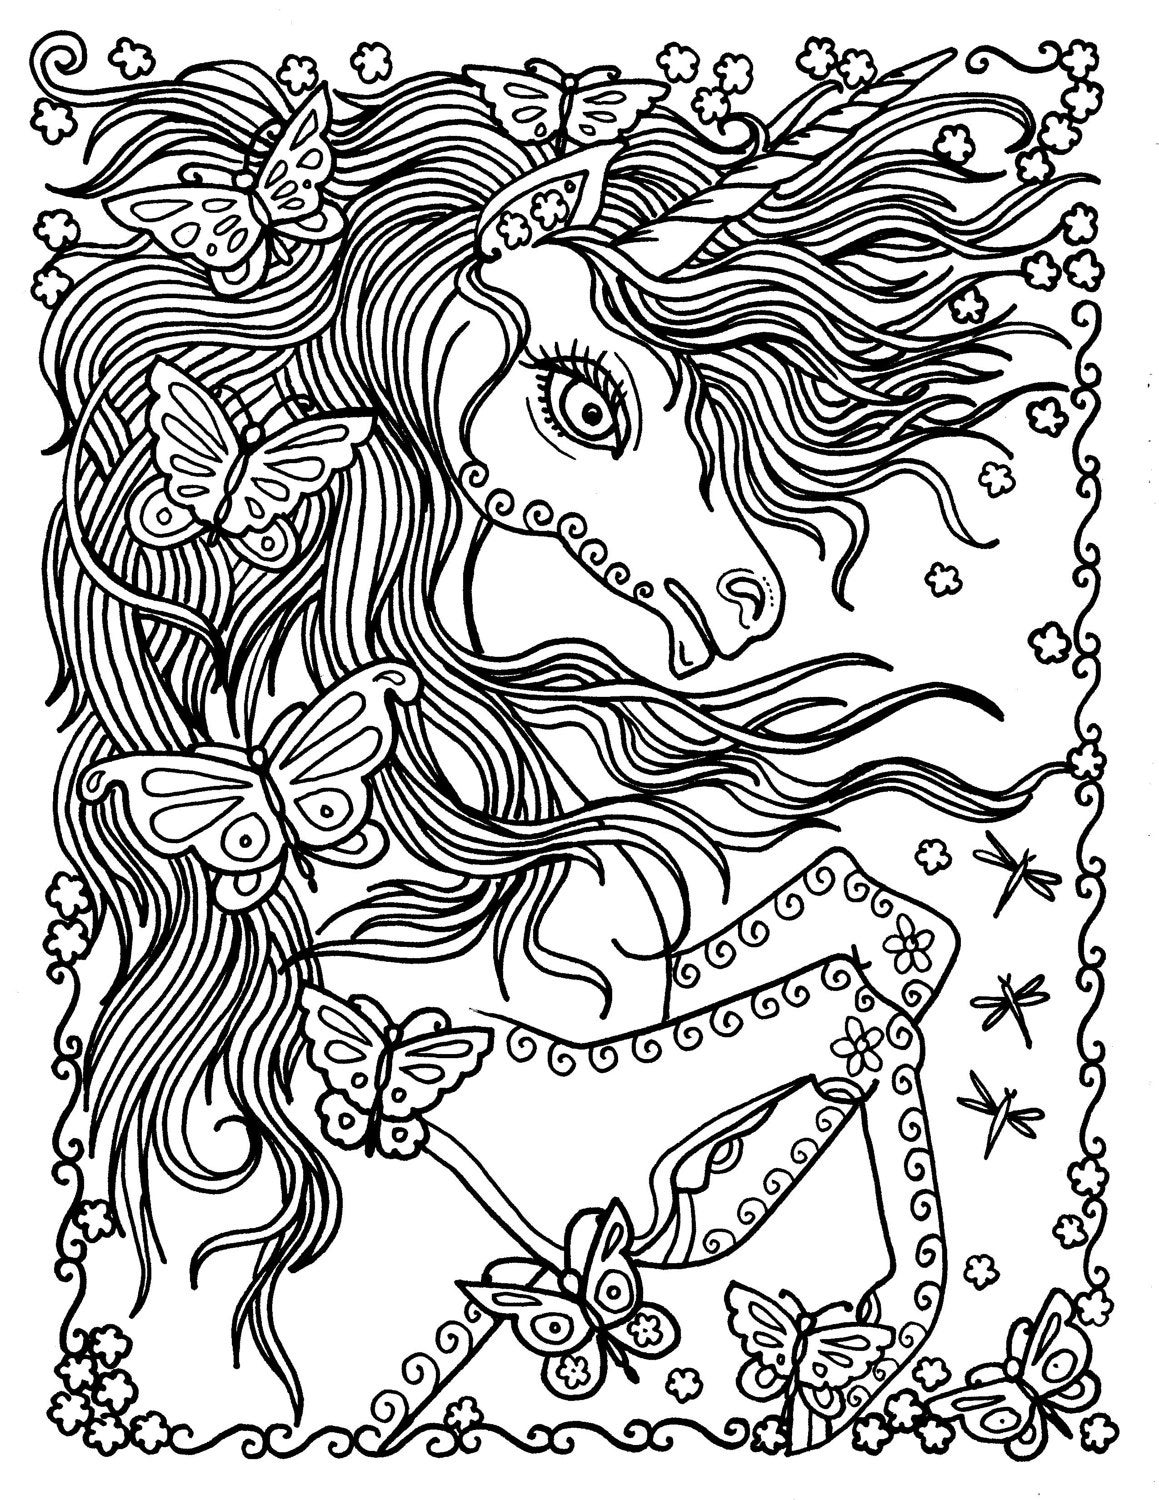 unicorn and butterflies instant download fantasy coloring